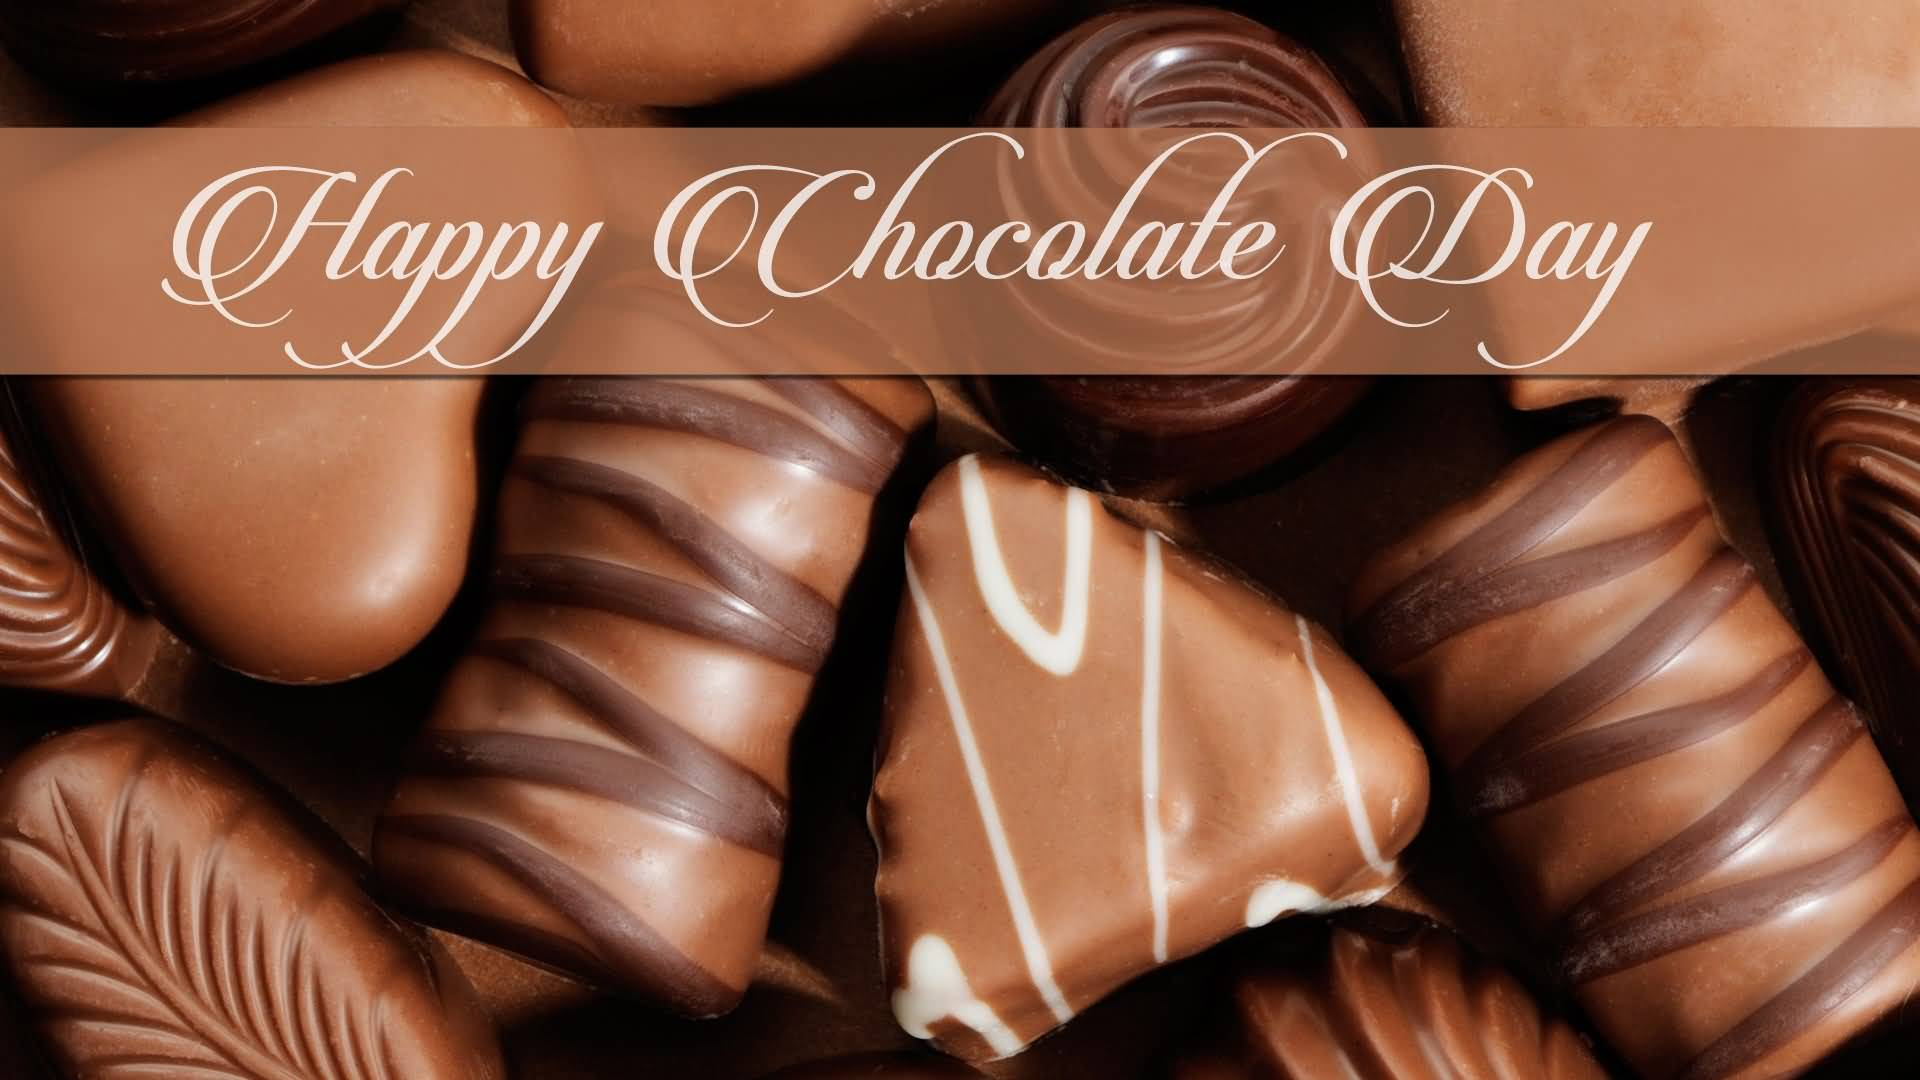 Happy Chocolate Day attractive wallpaper image for your love